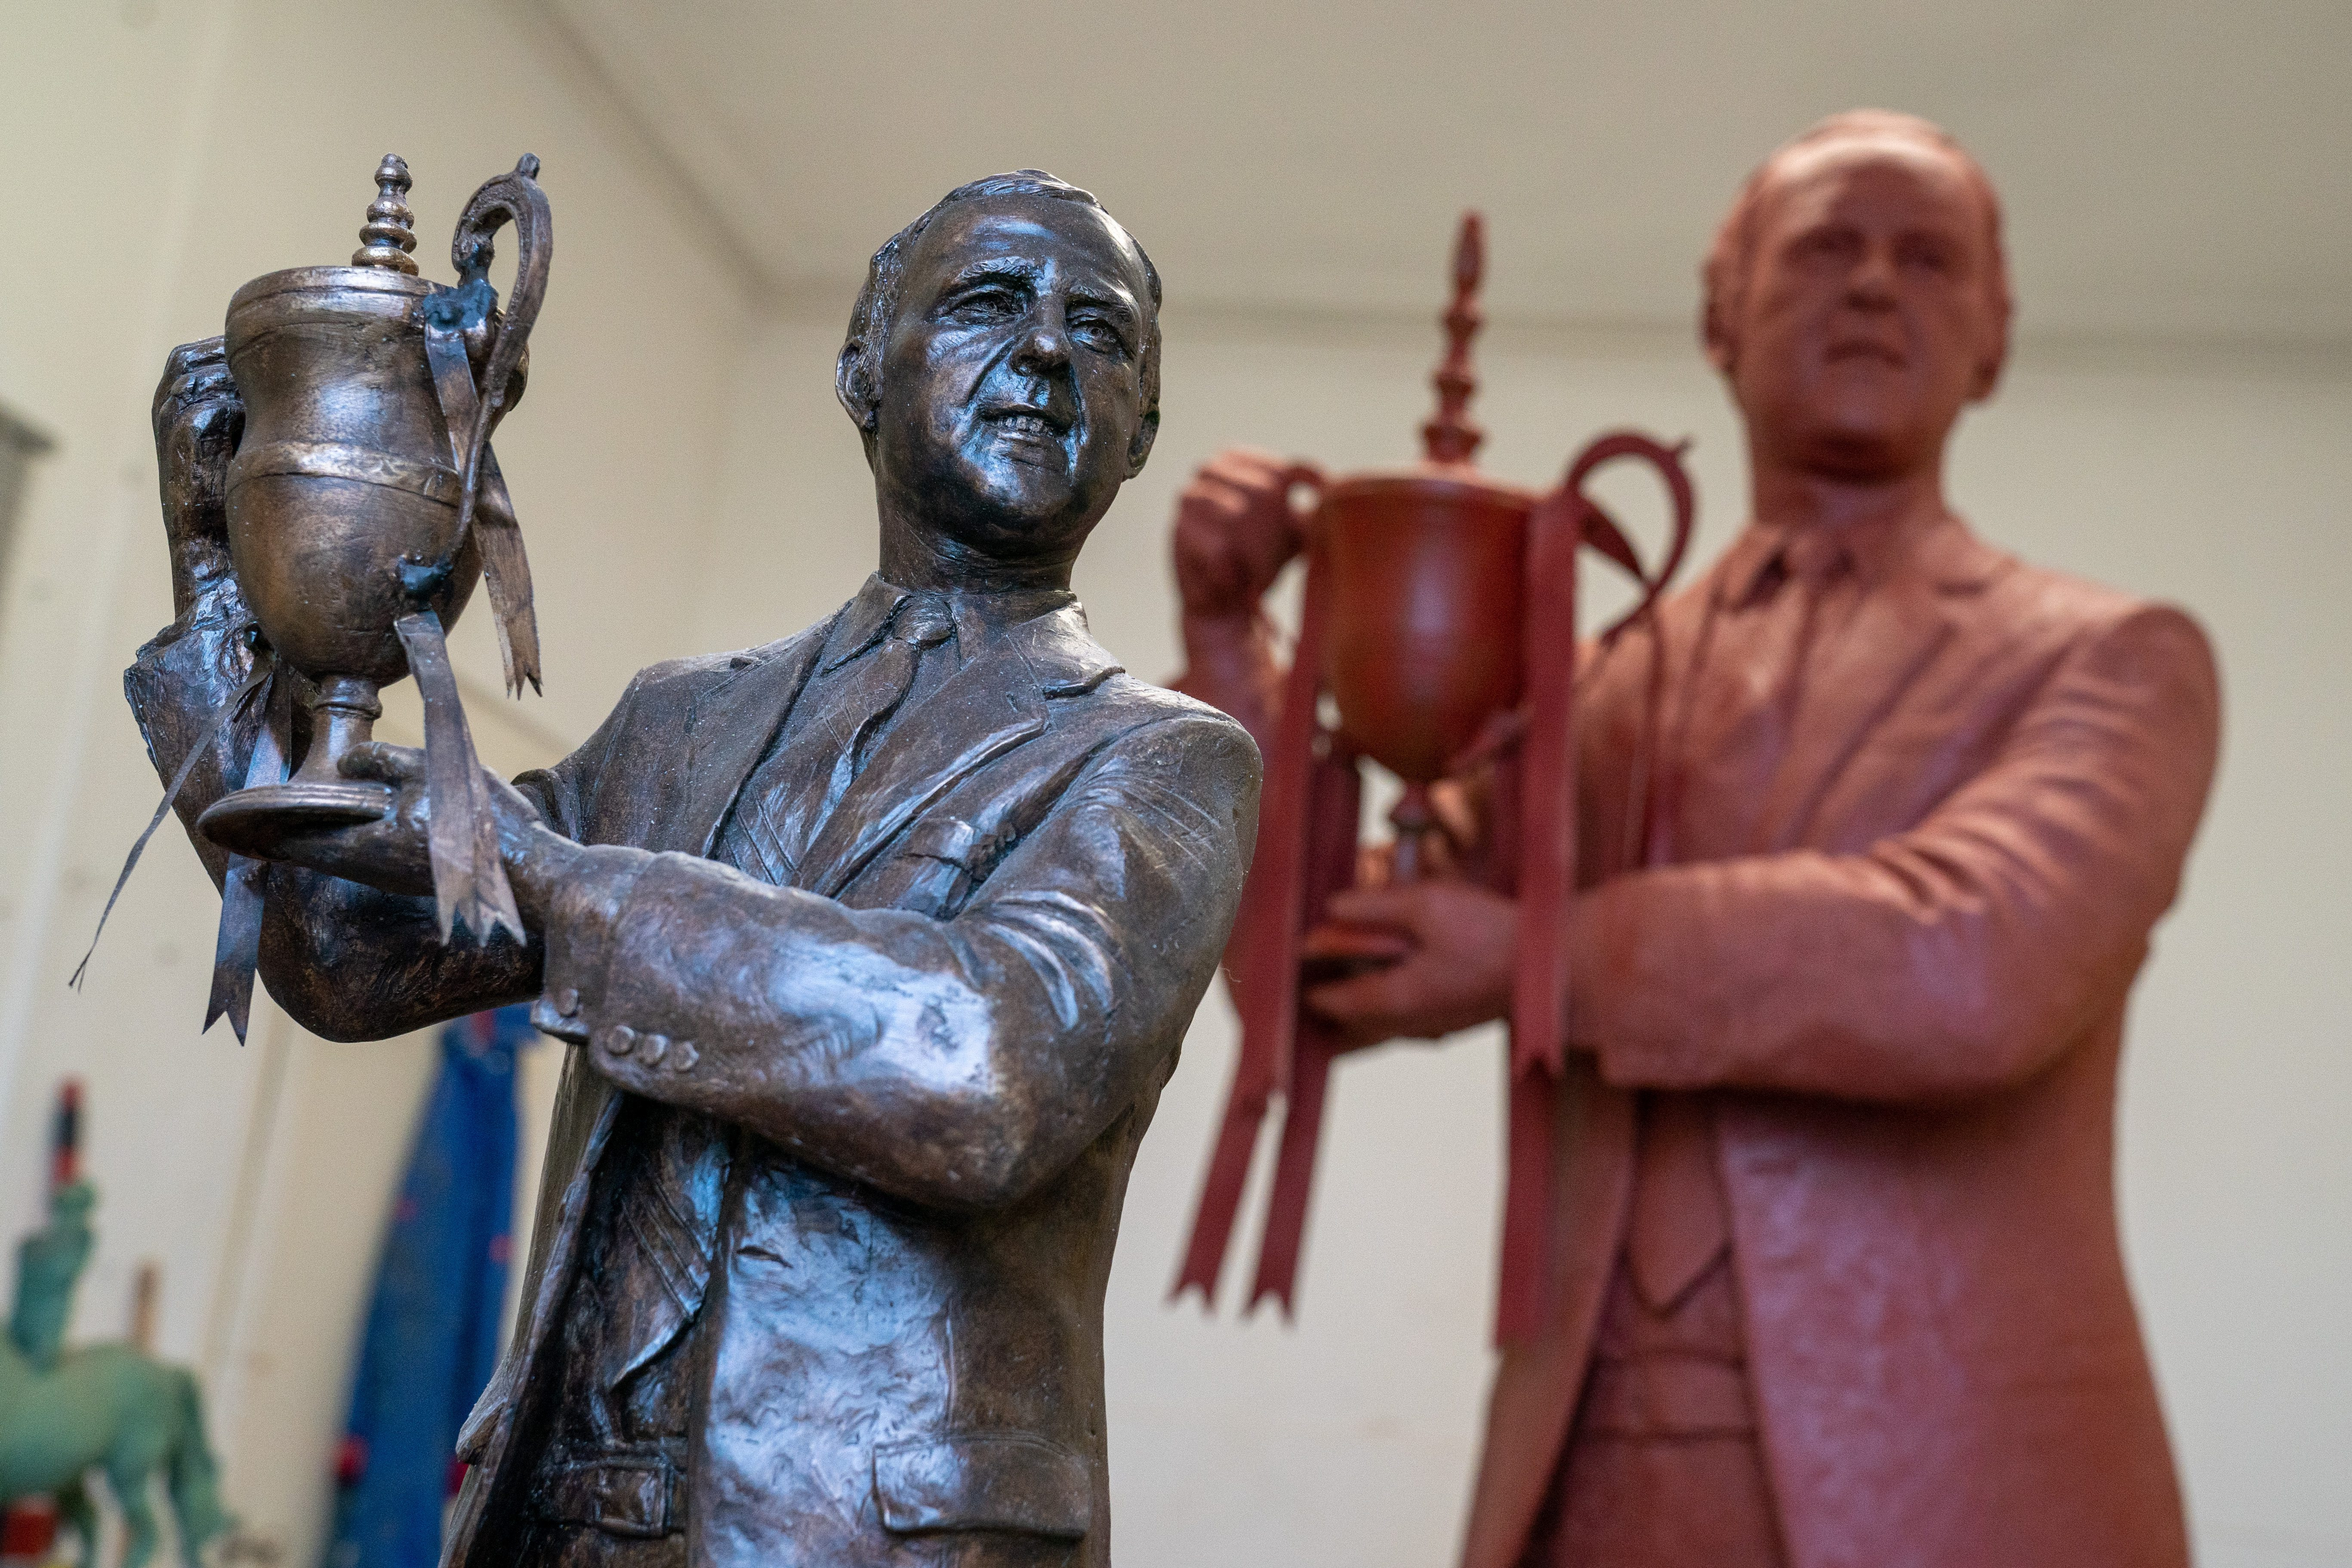 The statue, ready to be bronzed, and the maquette.